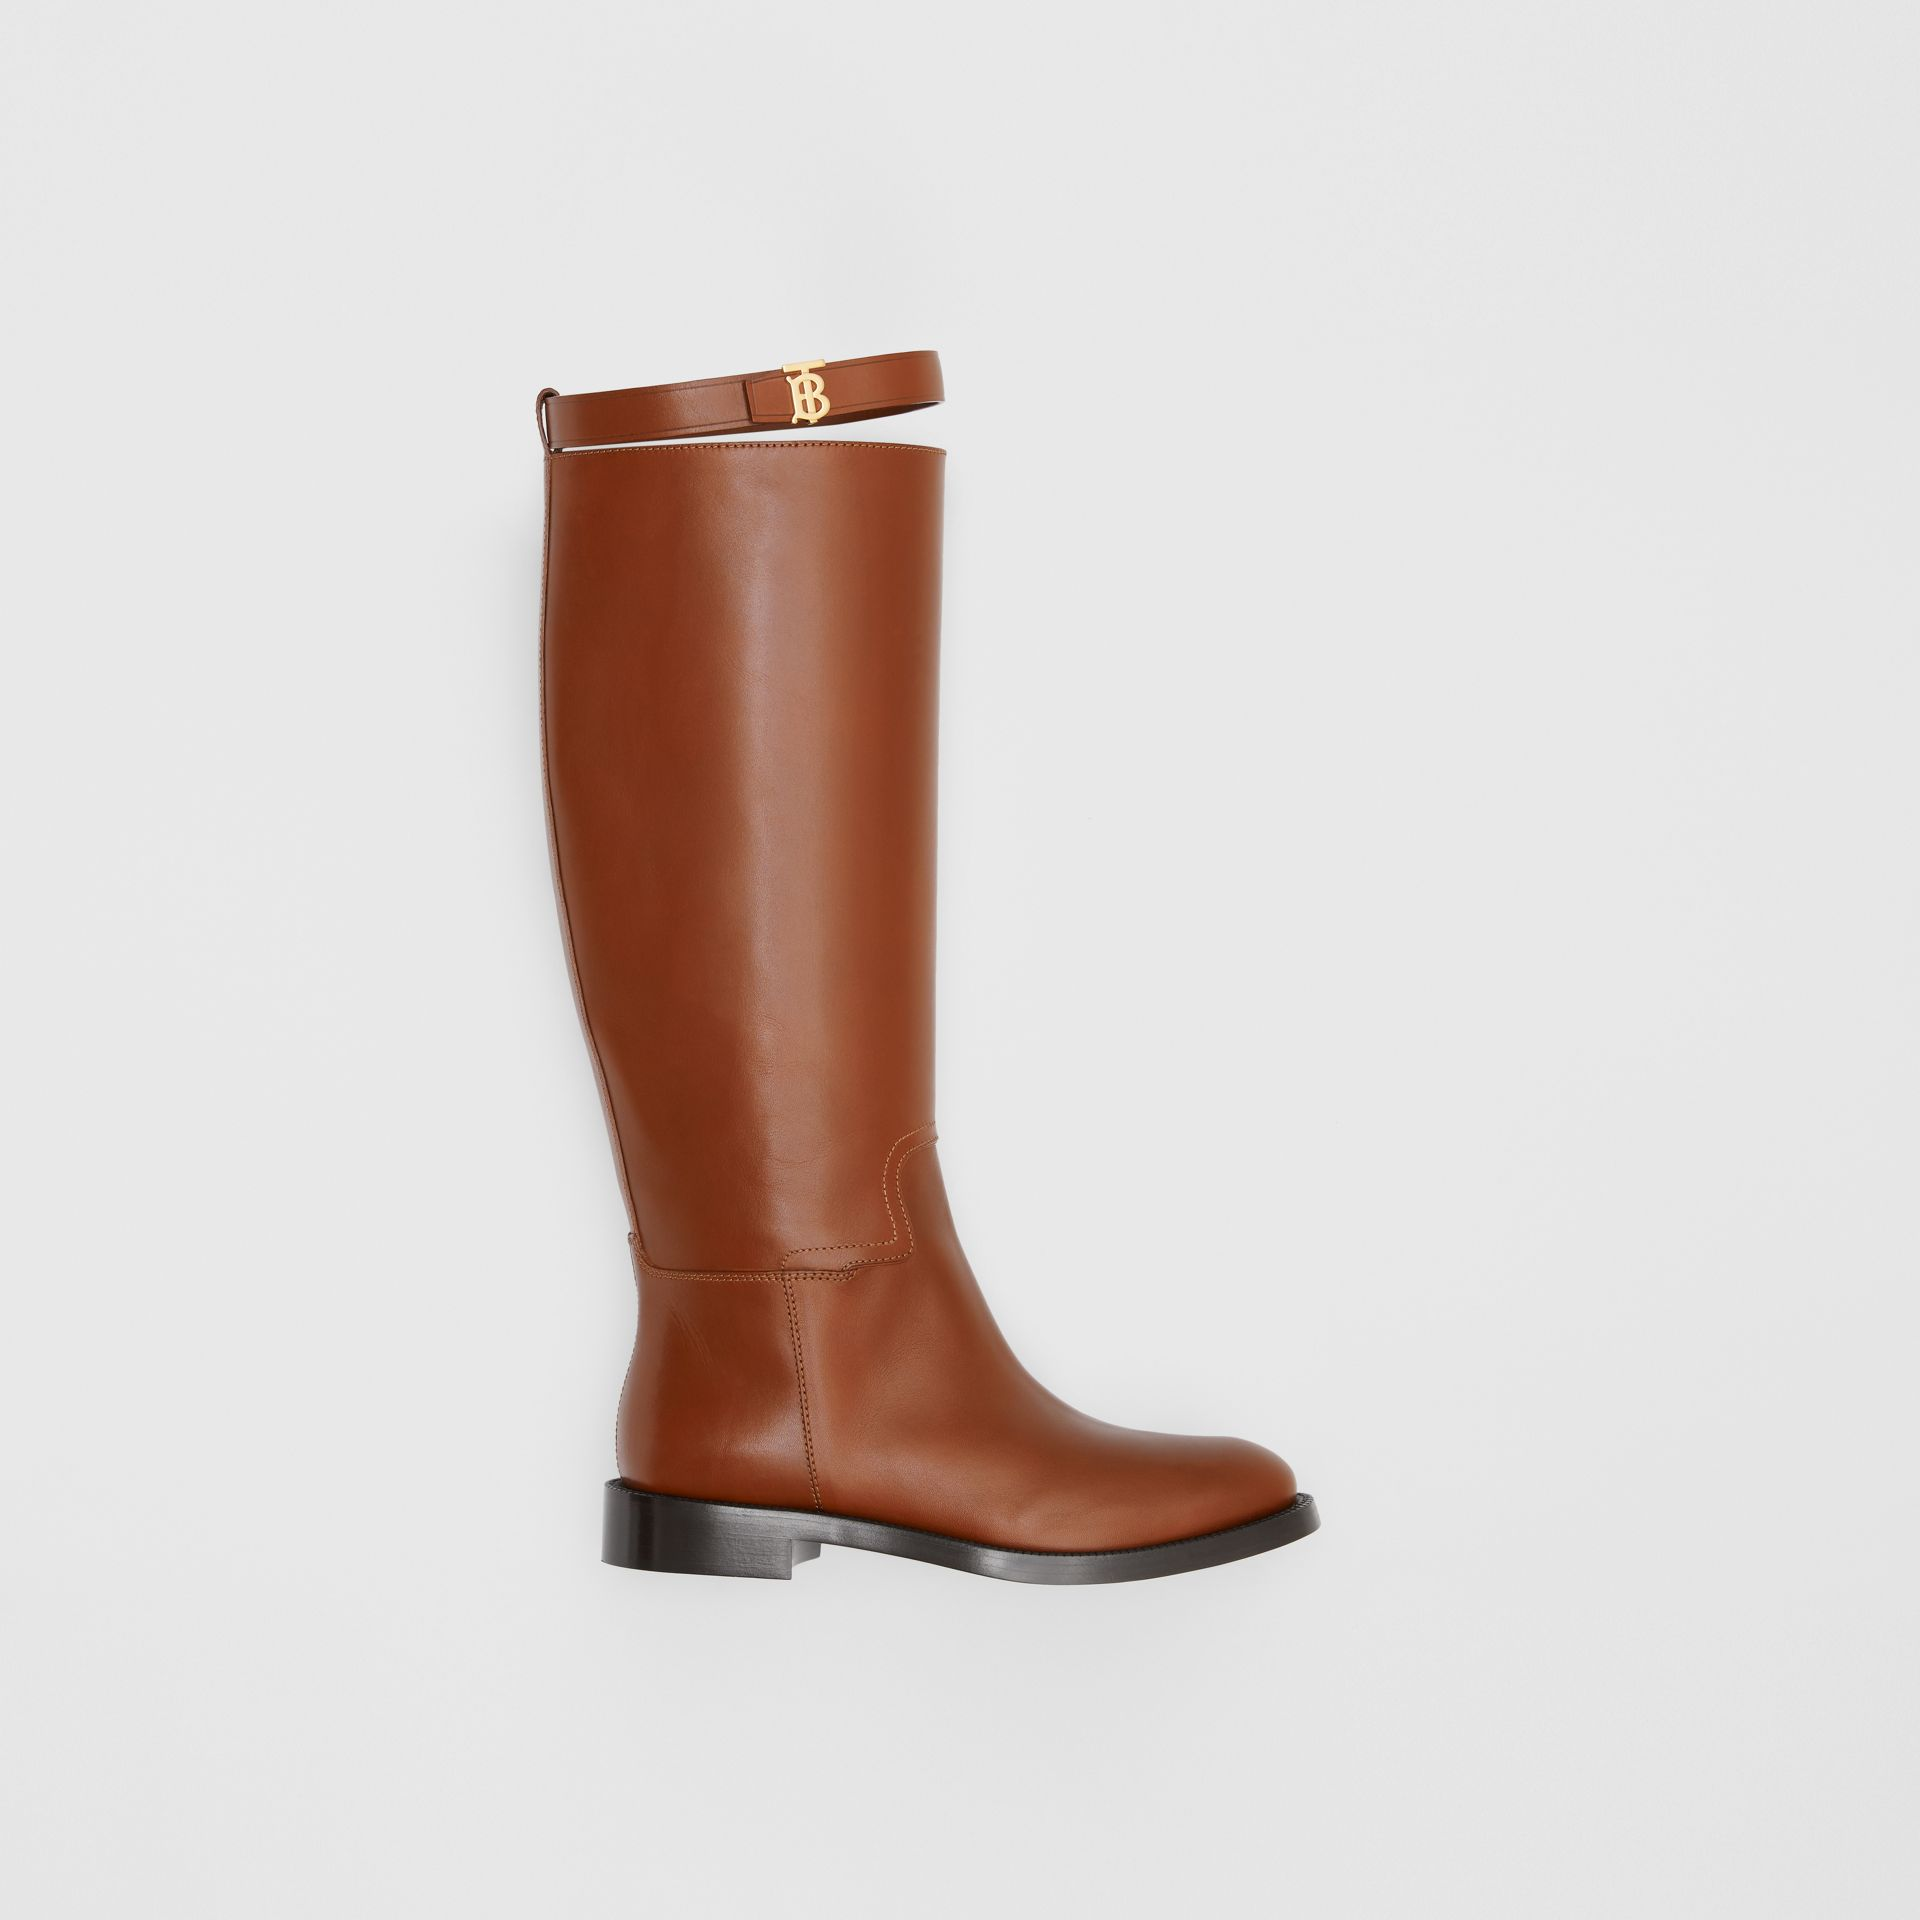 Monogram Motif Leather Knee-high Boots in Tan - Women | Burberry United Kingdom - gallery image 0